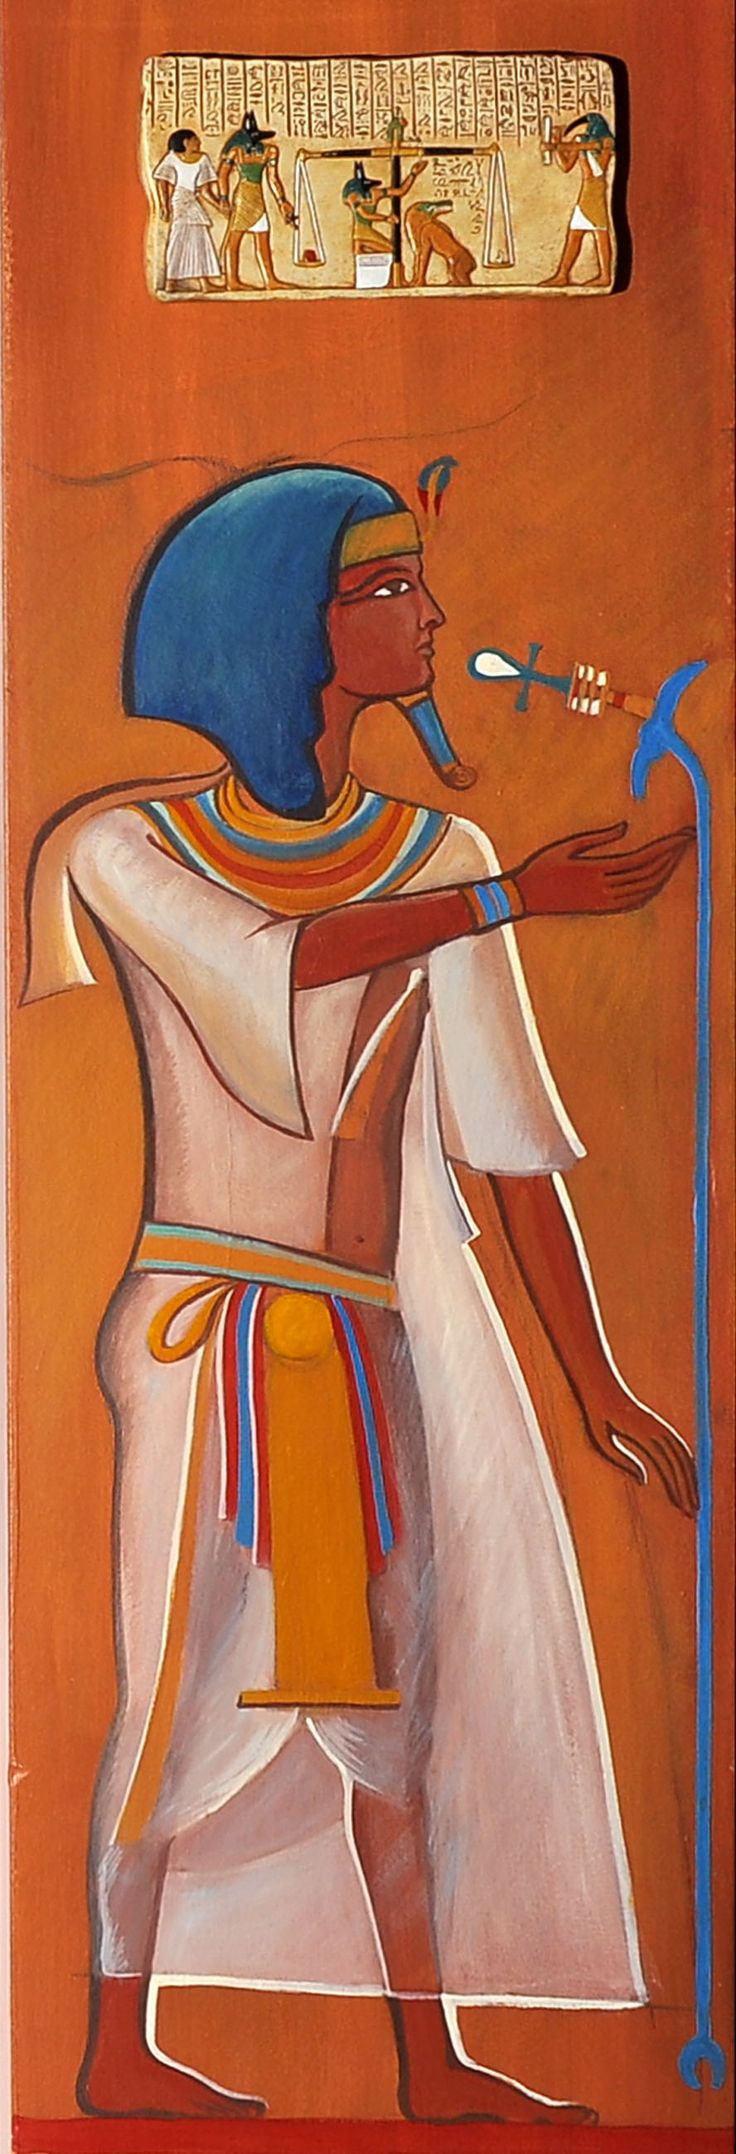 A pharaoh on painted on a wall!